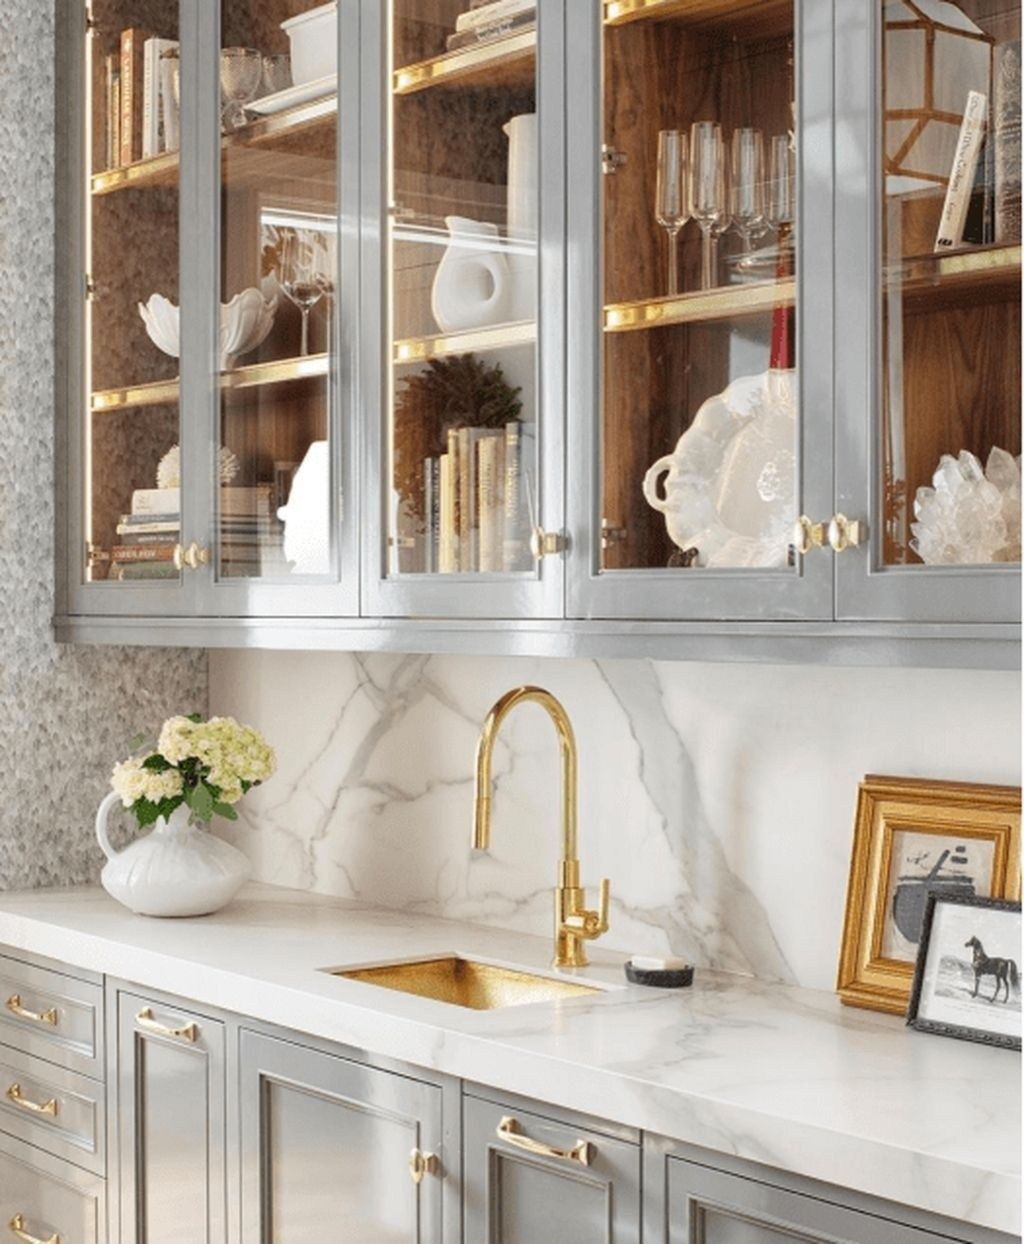 13 Perfect Pantry Interior Design Ideas For Home Kuchen Rustikal Schone Kuchen Rustikales Kuchen Dekor